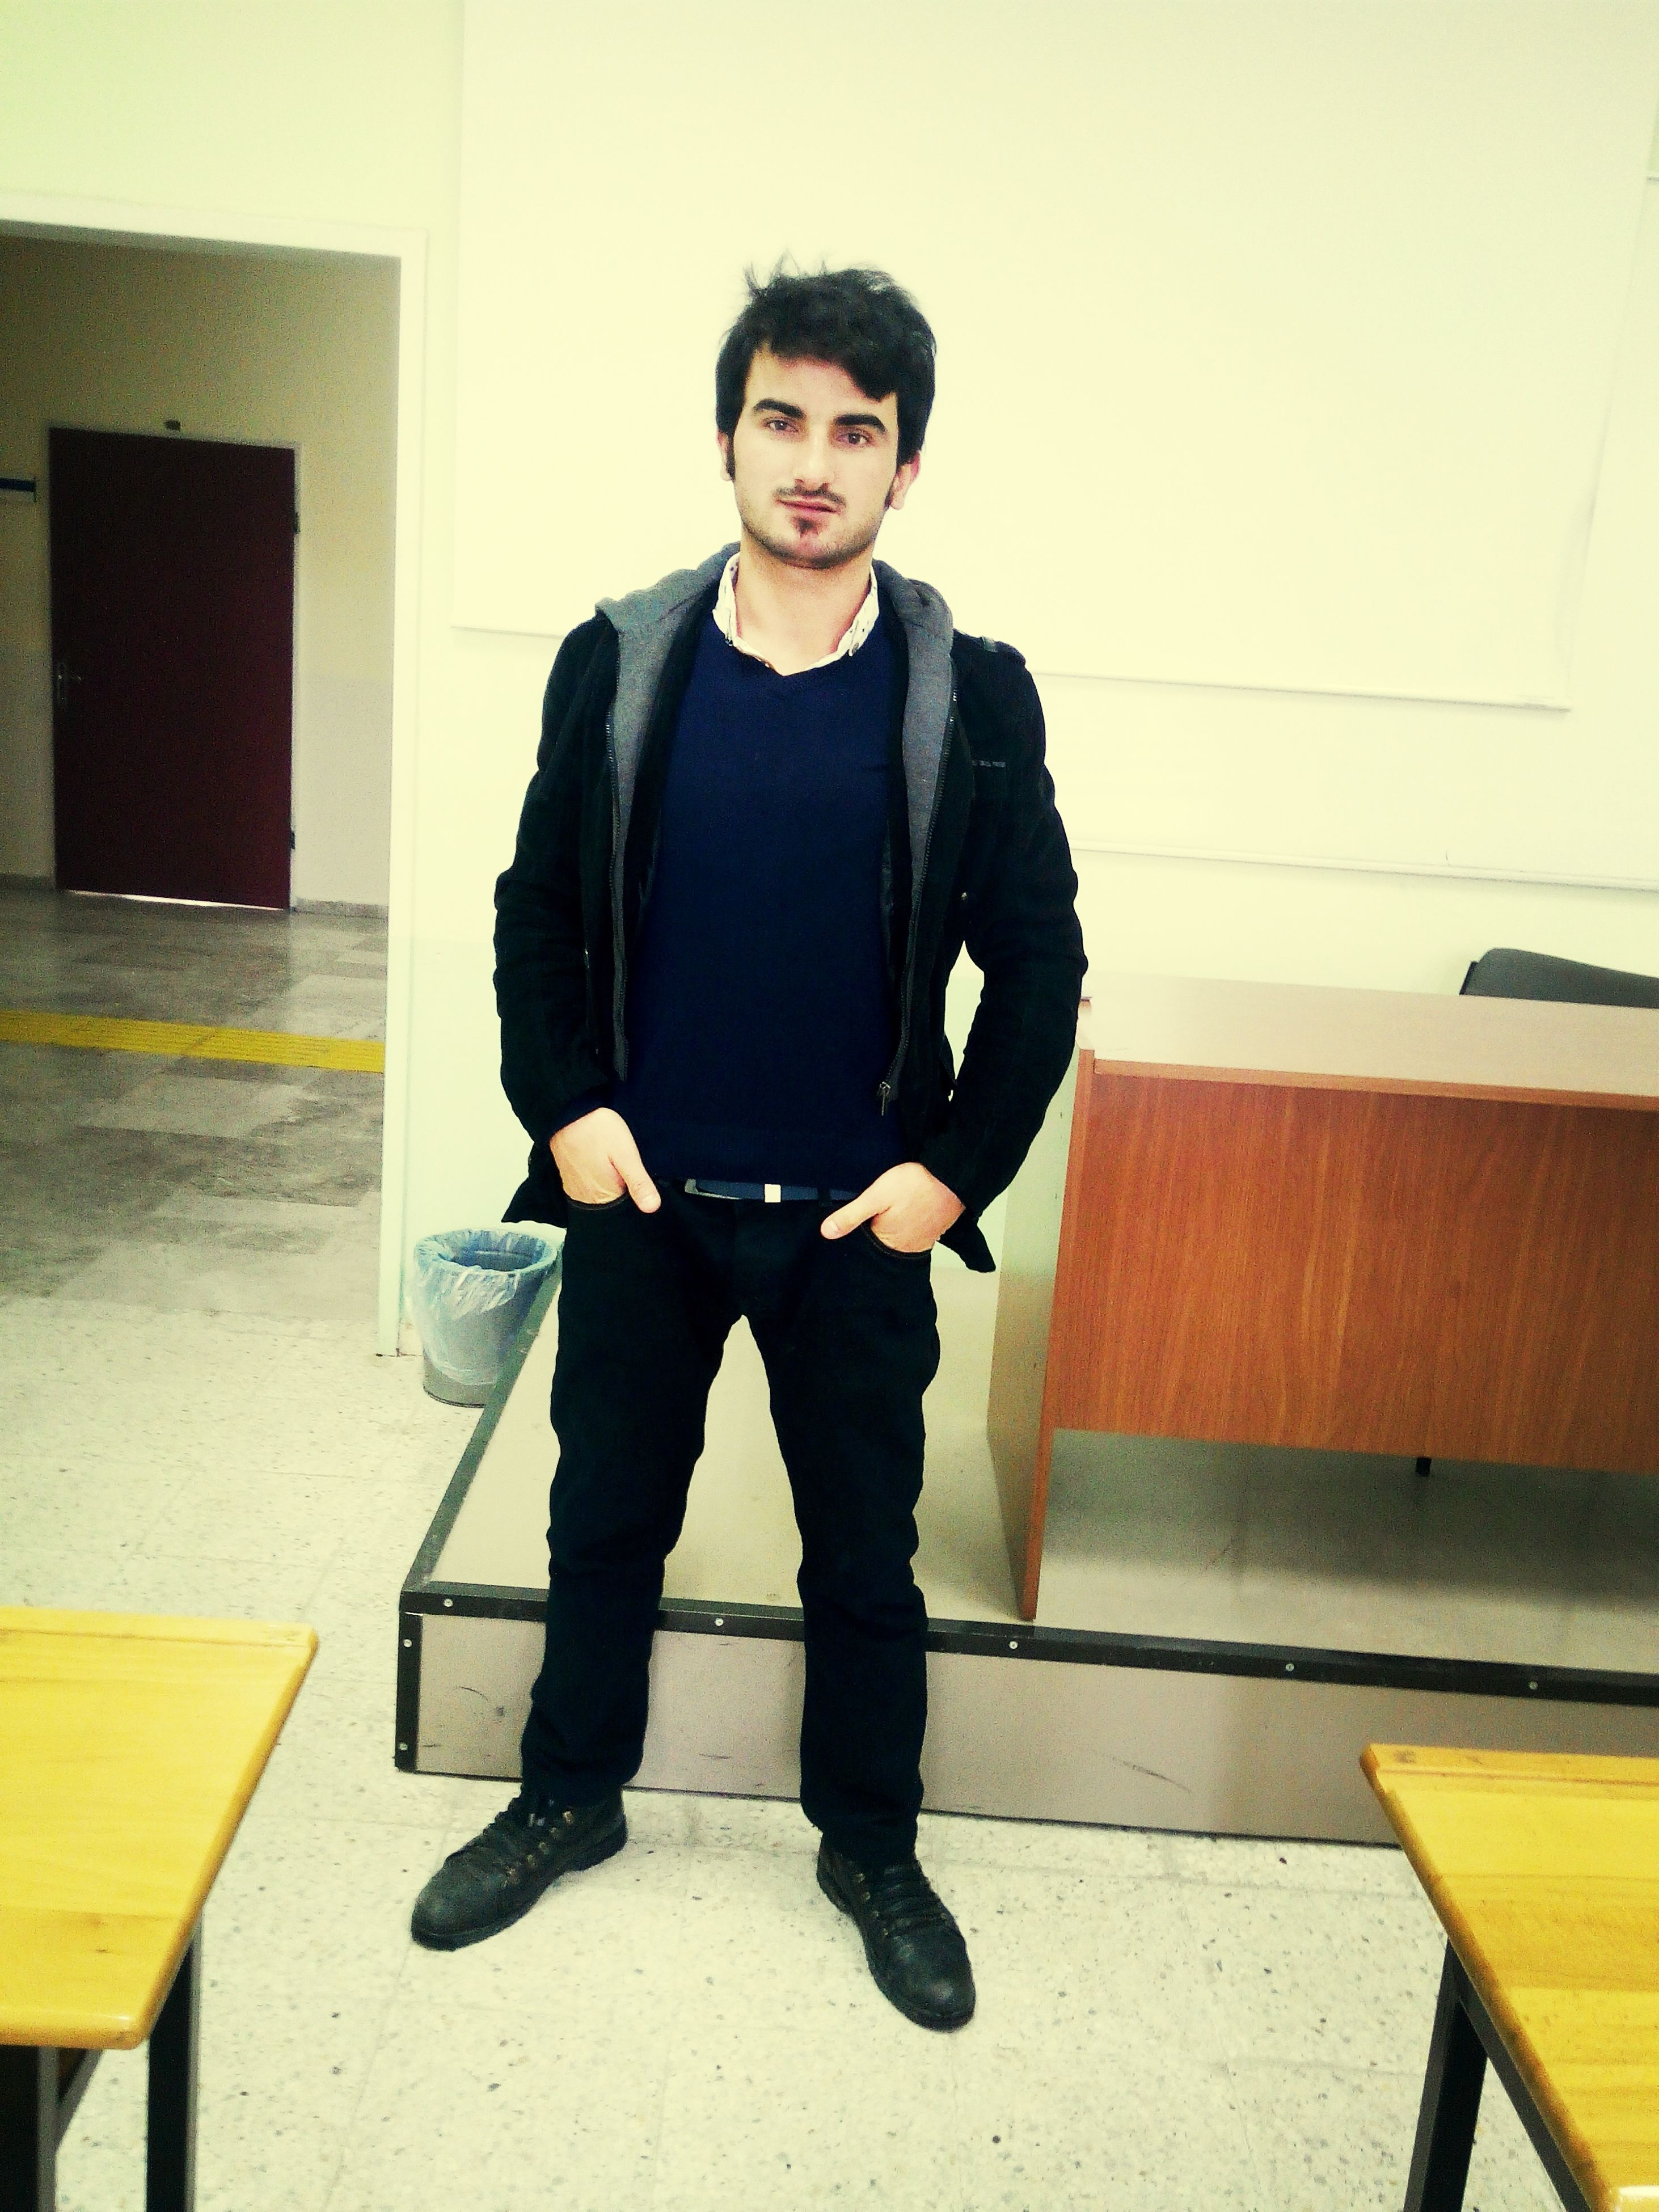 casual clothing, looking at camera, front view, portrait, standing, young adult, person, full length, lifestyles, young men, built structure, architecture, smiling, indoors, leisure activity, three quarter length, wall - building feature, sitting